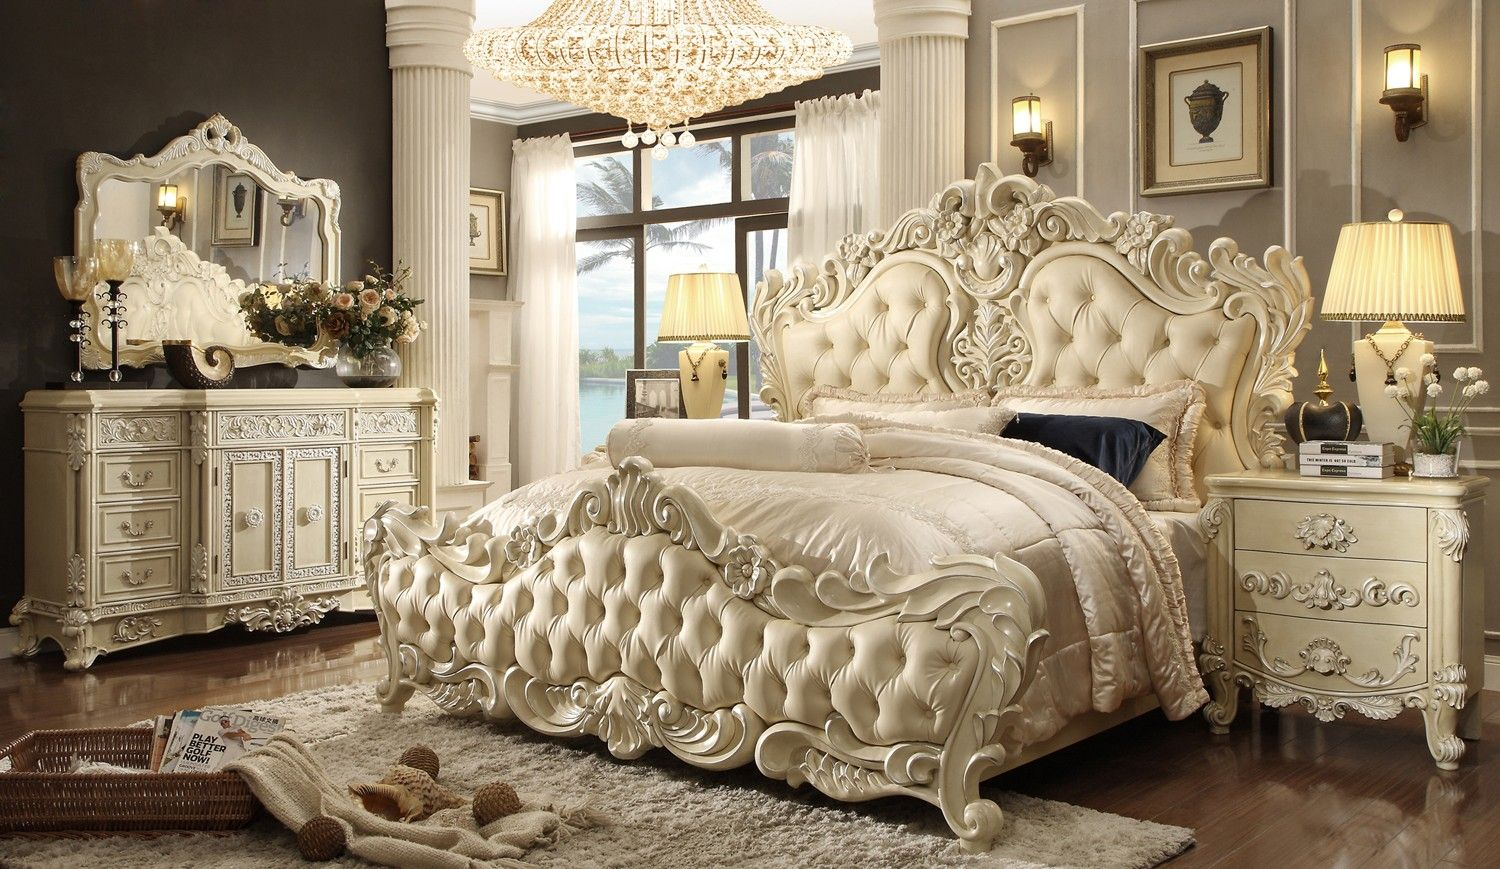 HOMEY DESIGN HD 5800TRADITIONAL VICTORIAN LUXURIOUS 5 PCS KING BEDROOM SET